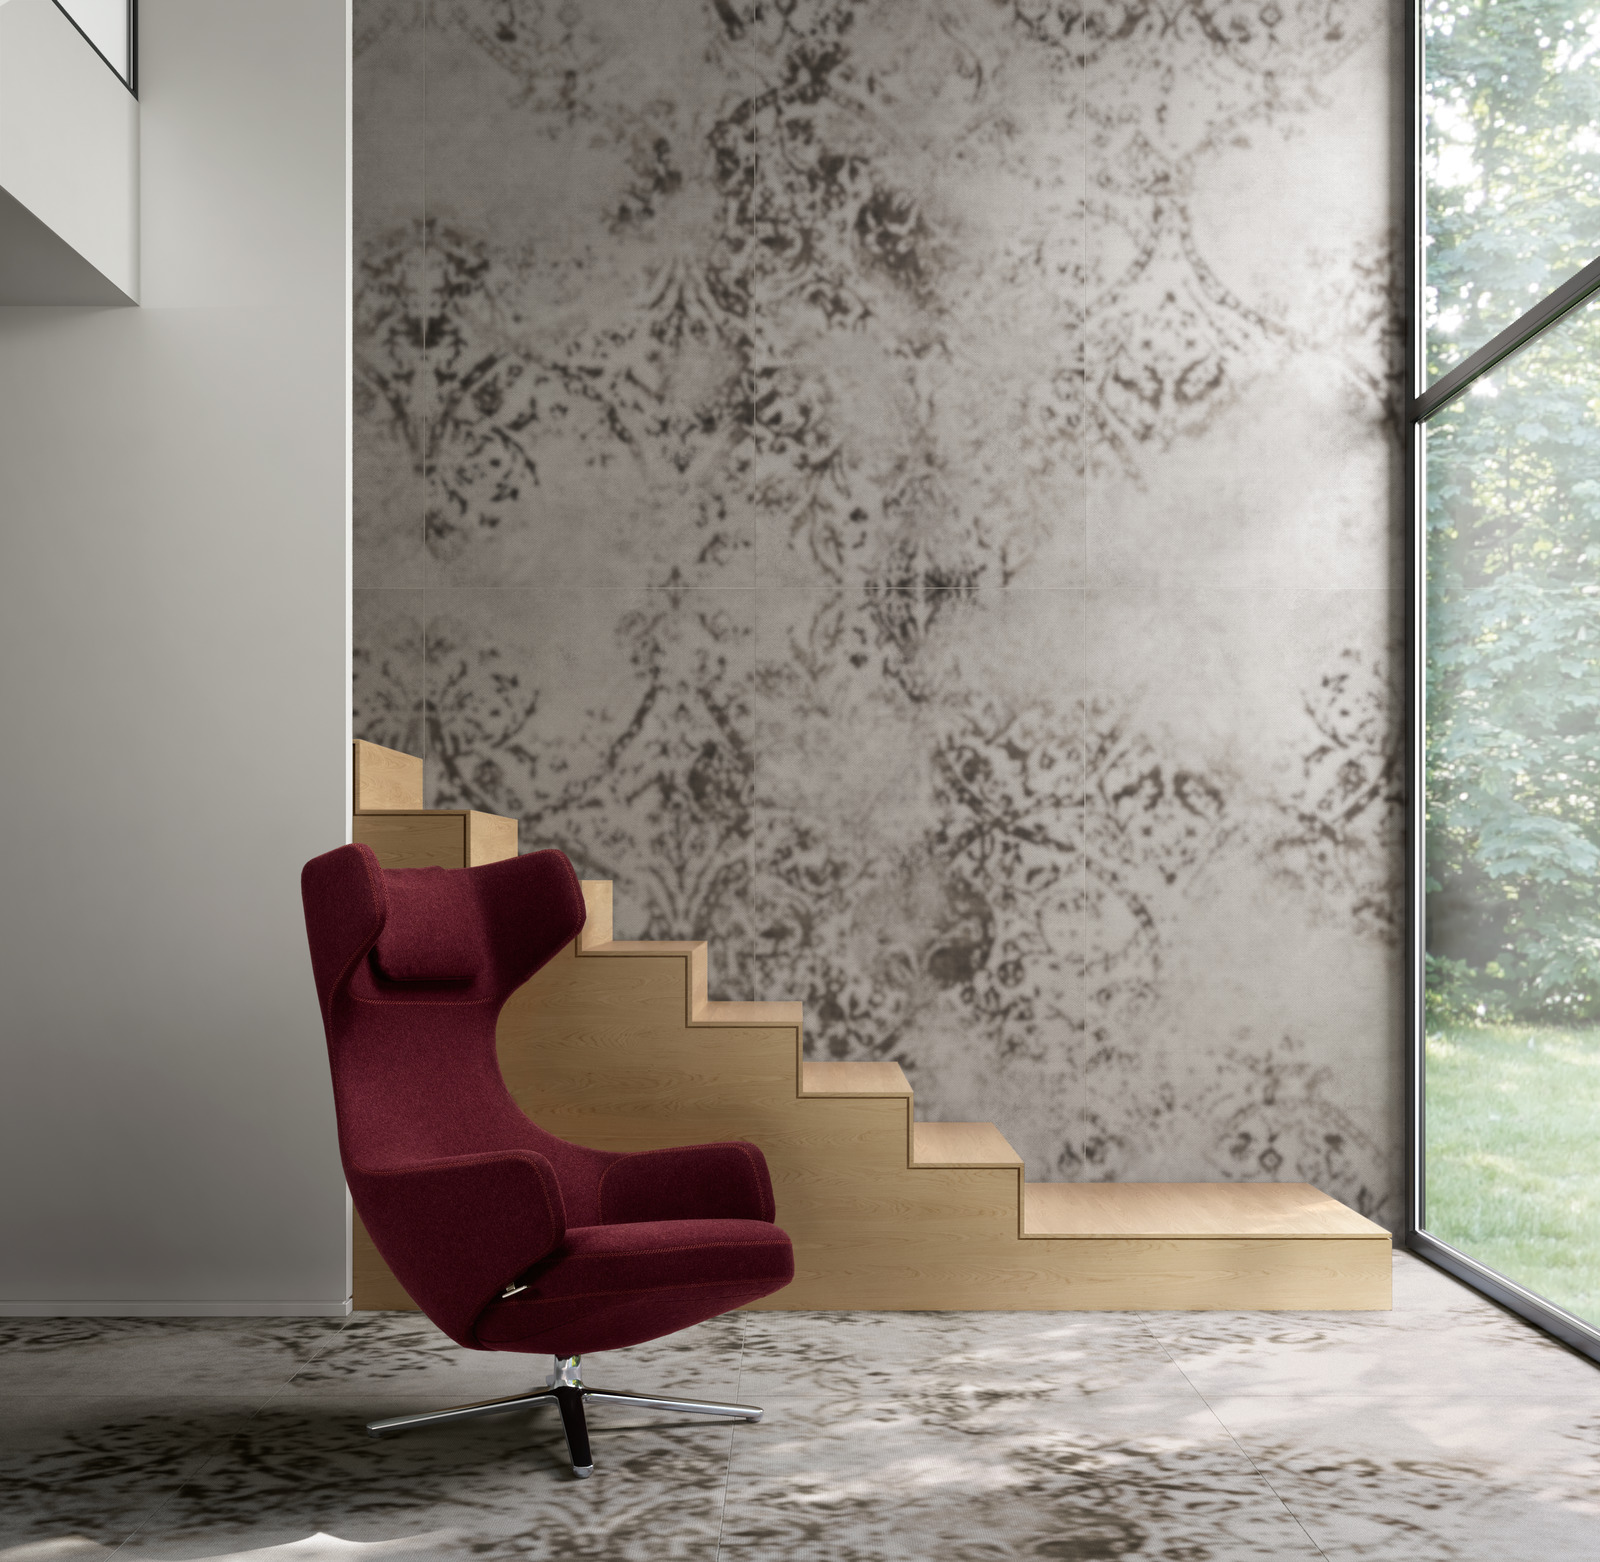 Grand Carpet  Design Antonio Citterio Patricia Viel  Marazzi